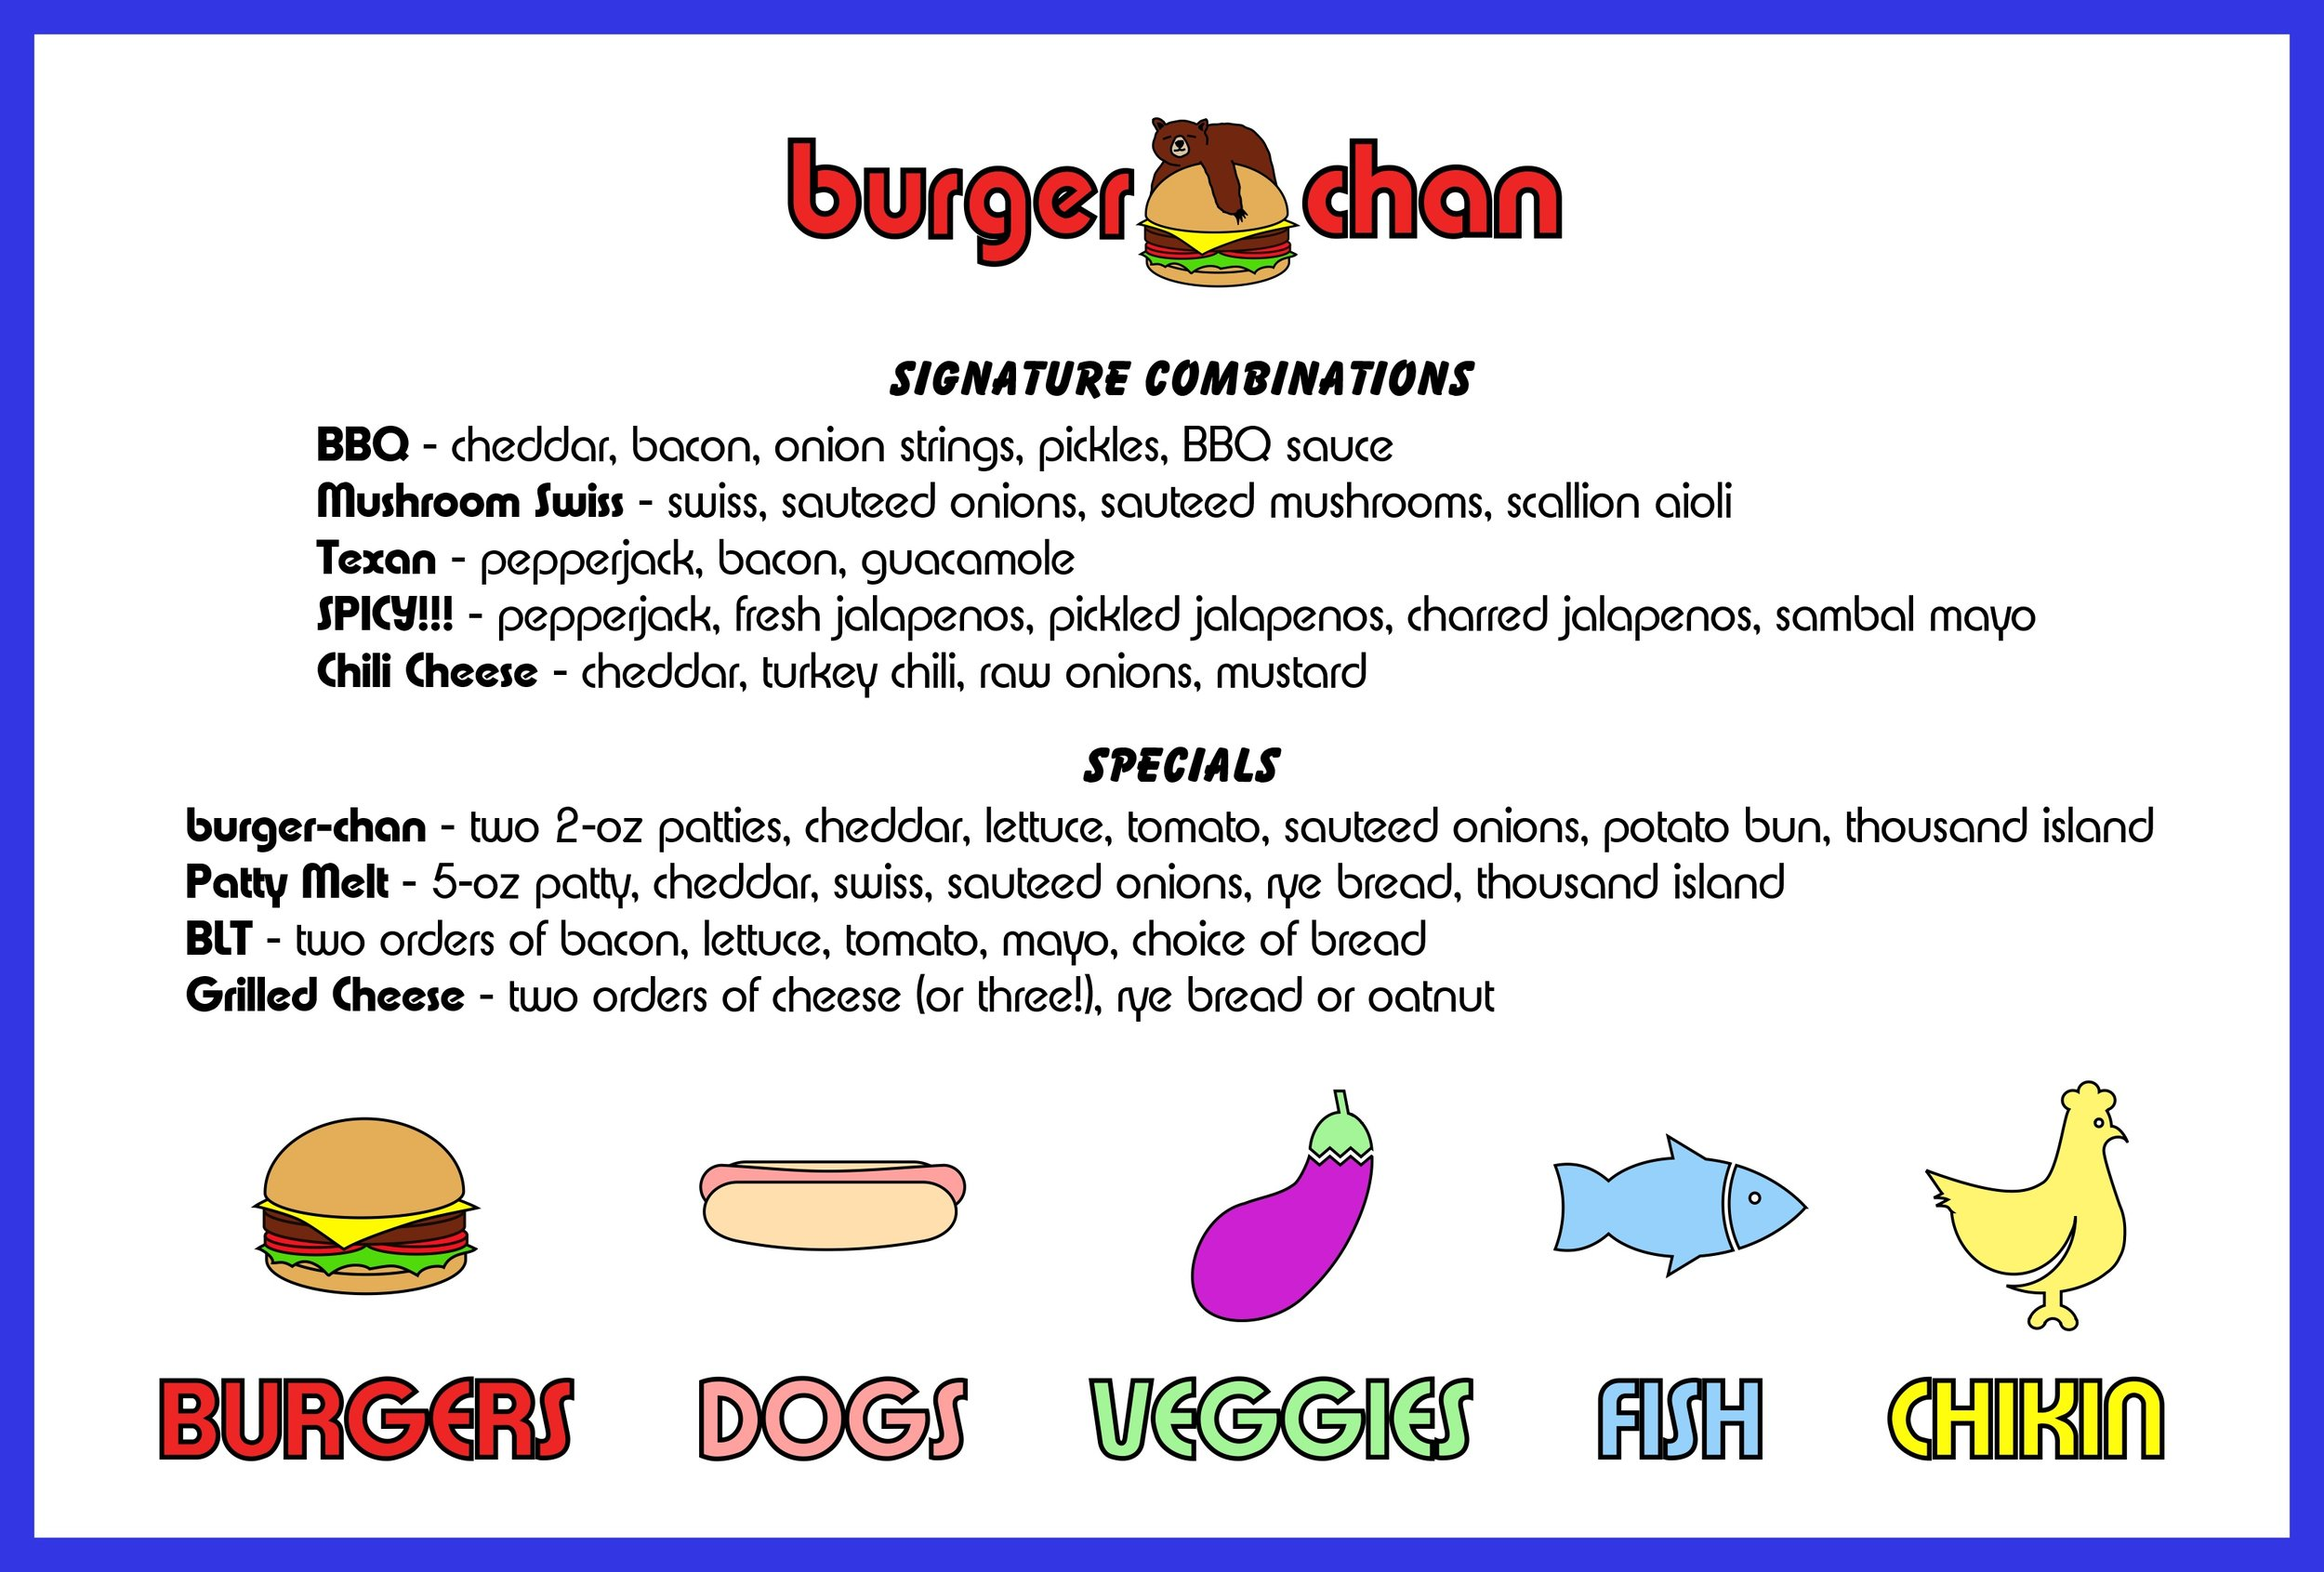 burger-chan Big Menu Board.jpg